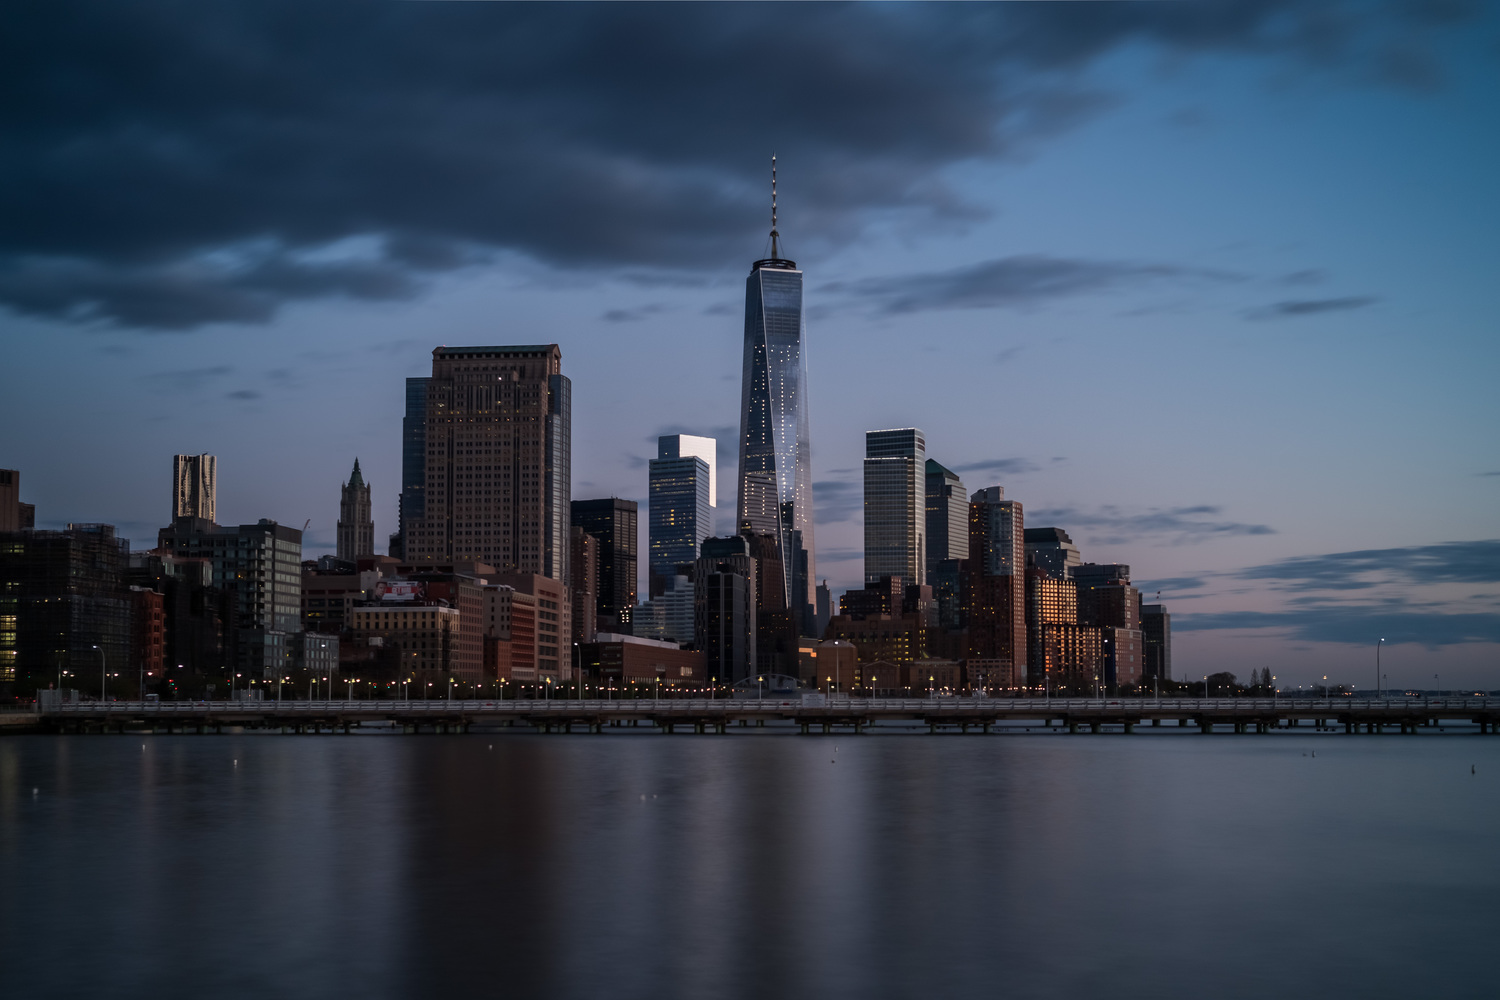 WTC at dusk